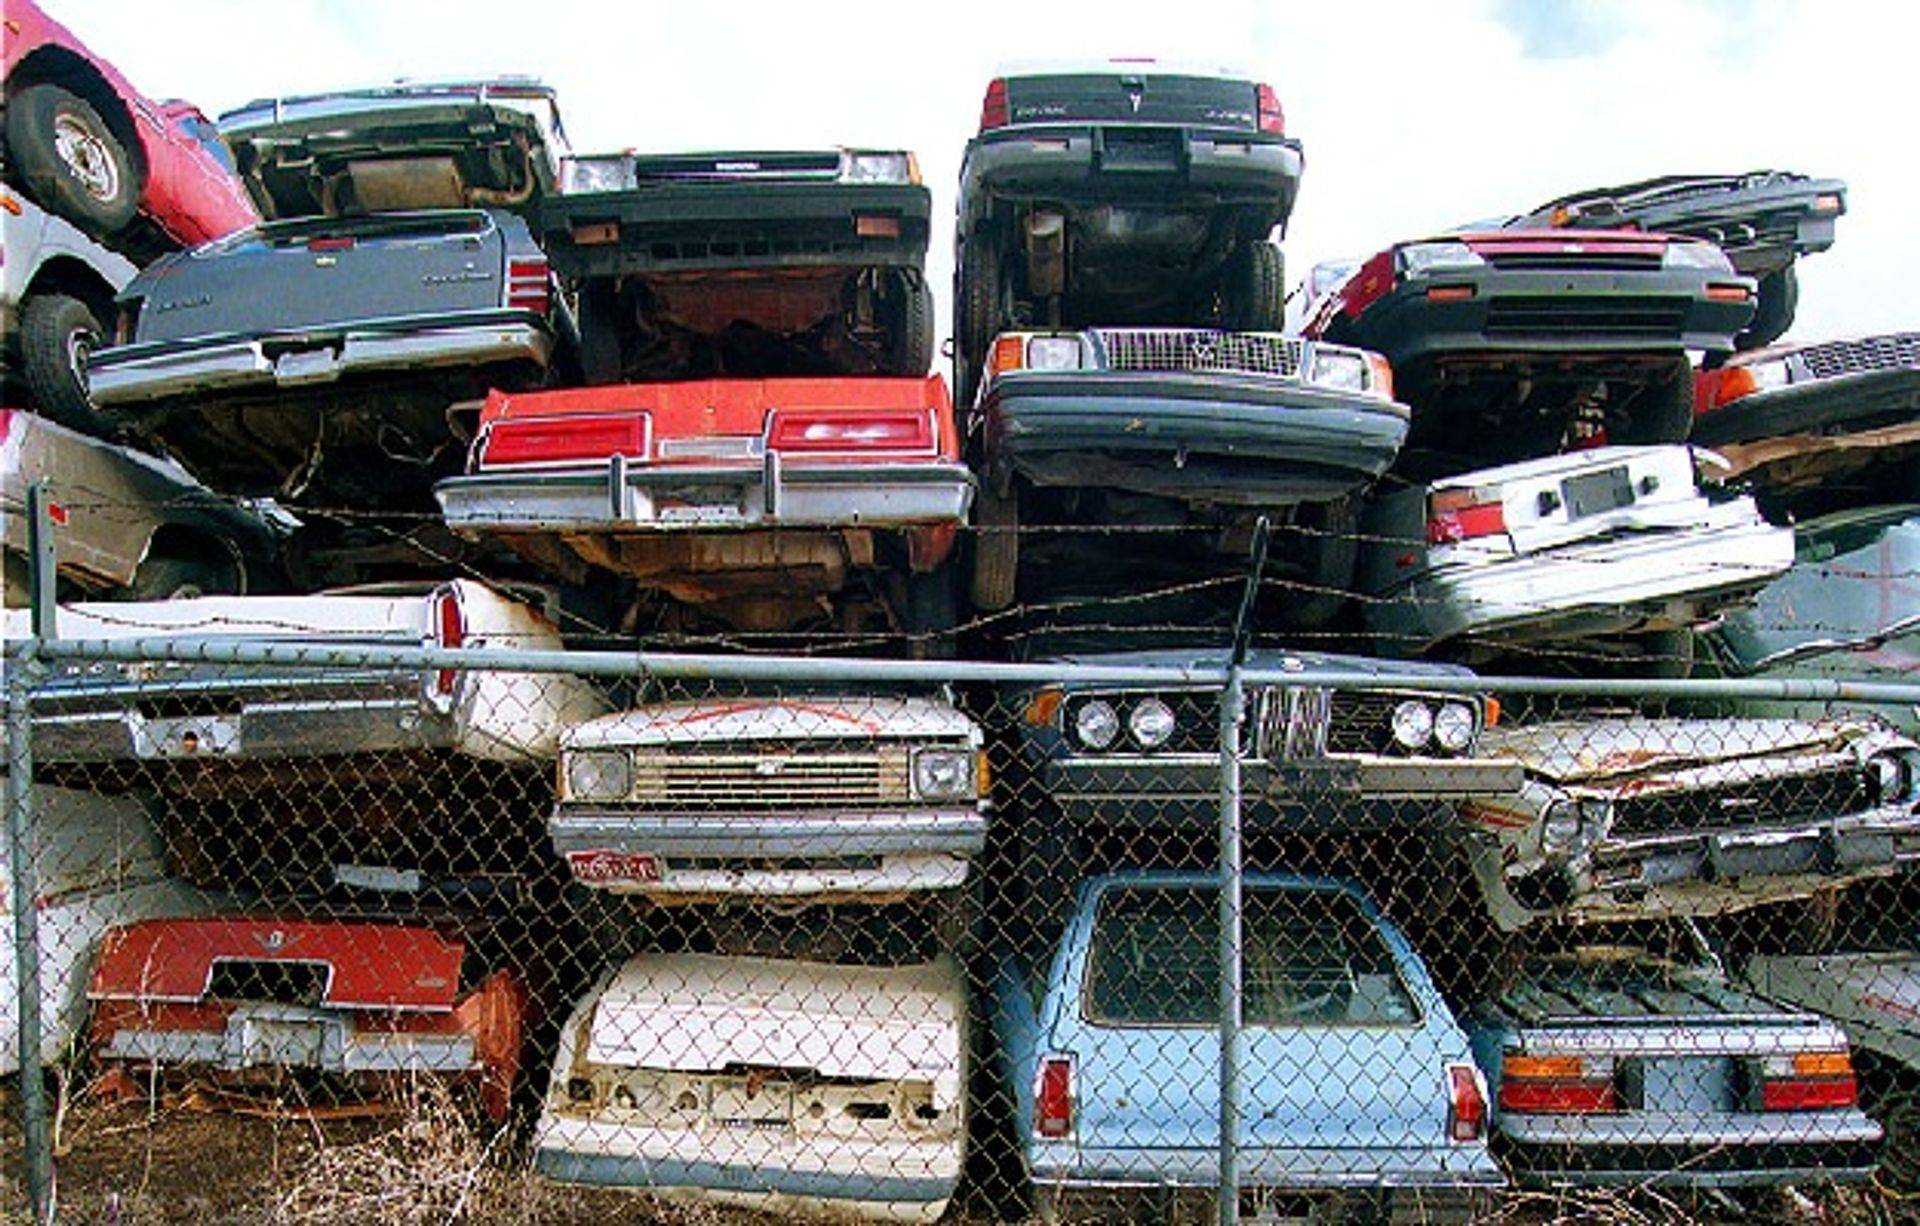 salvage autos,scrap vehicles,junk car buyers,scrap car buyers, junk car removal, scrap car removal,junk for cash